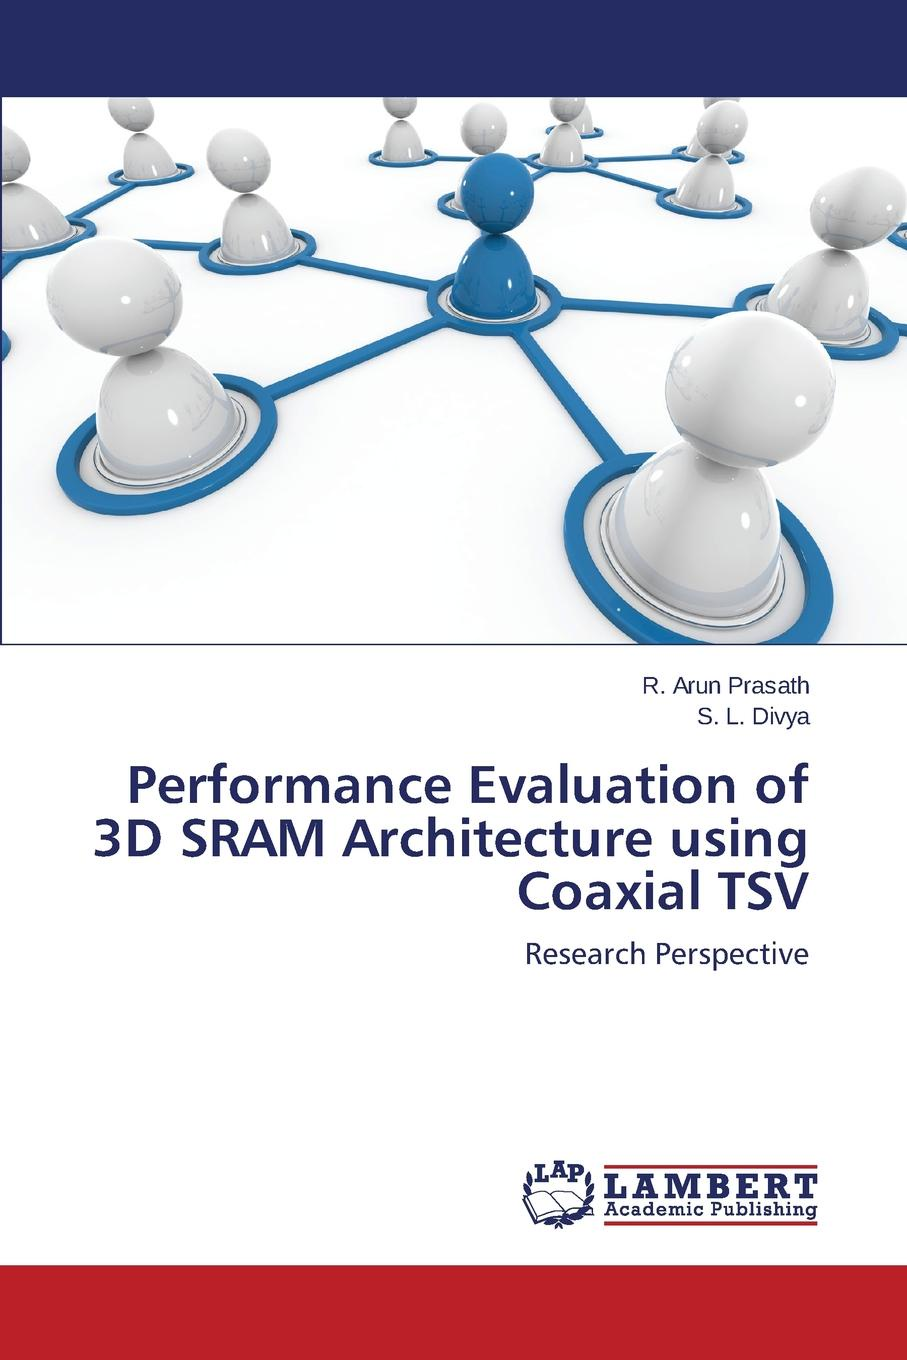 Prasath R. Arun, Divya S. L. Performance Evaluation of 3D SRAM Architecture using Coaxial TSV sayoon dc 24v contactor czwt200a contactor with switching phase small volume large load capacity long service life